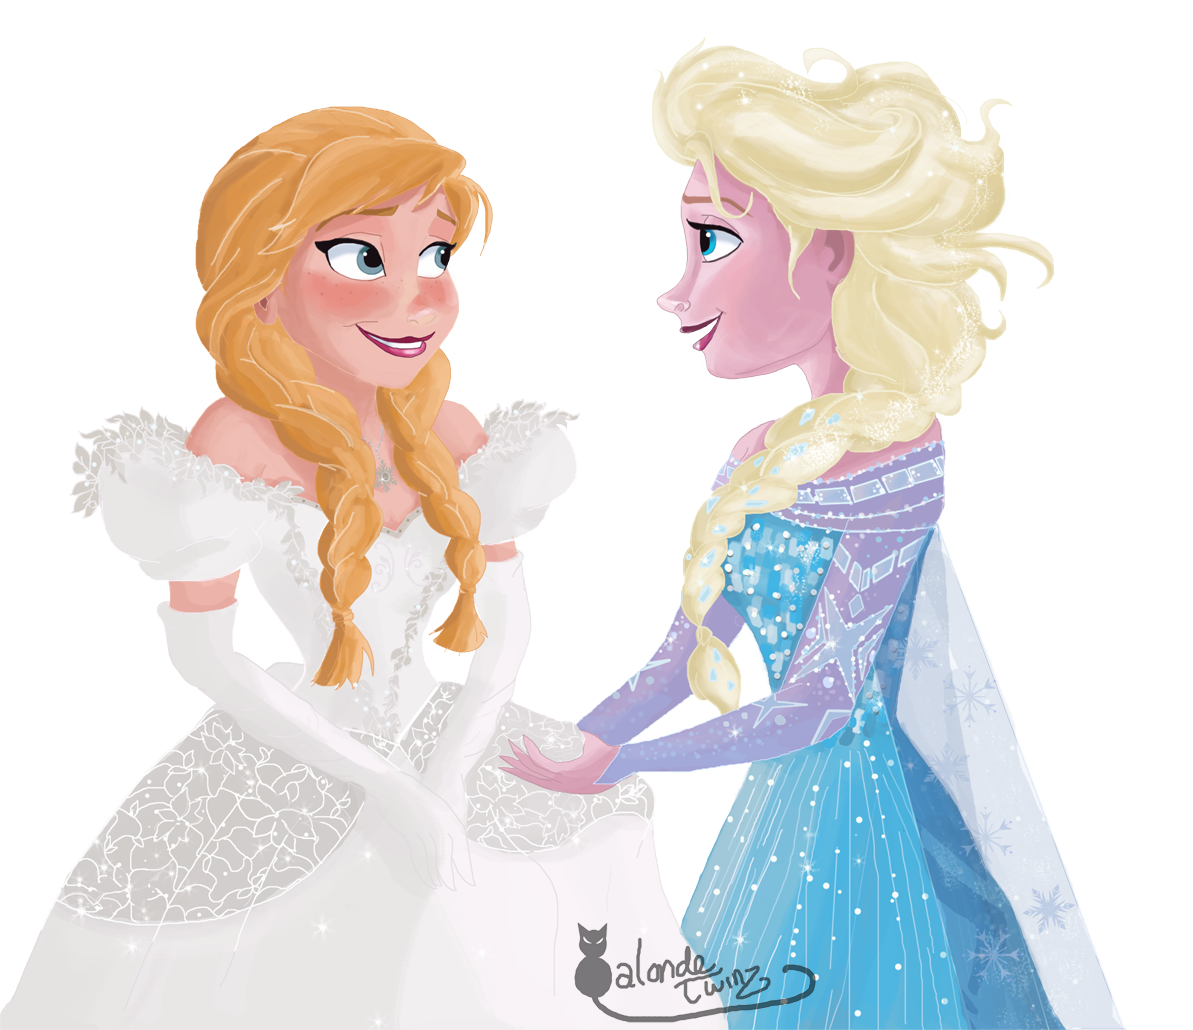 Anna and Elsa  Ouat  Anna's Wedding Dress by Wiccatwolf on DeviantArt